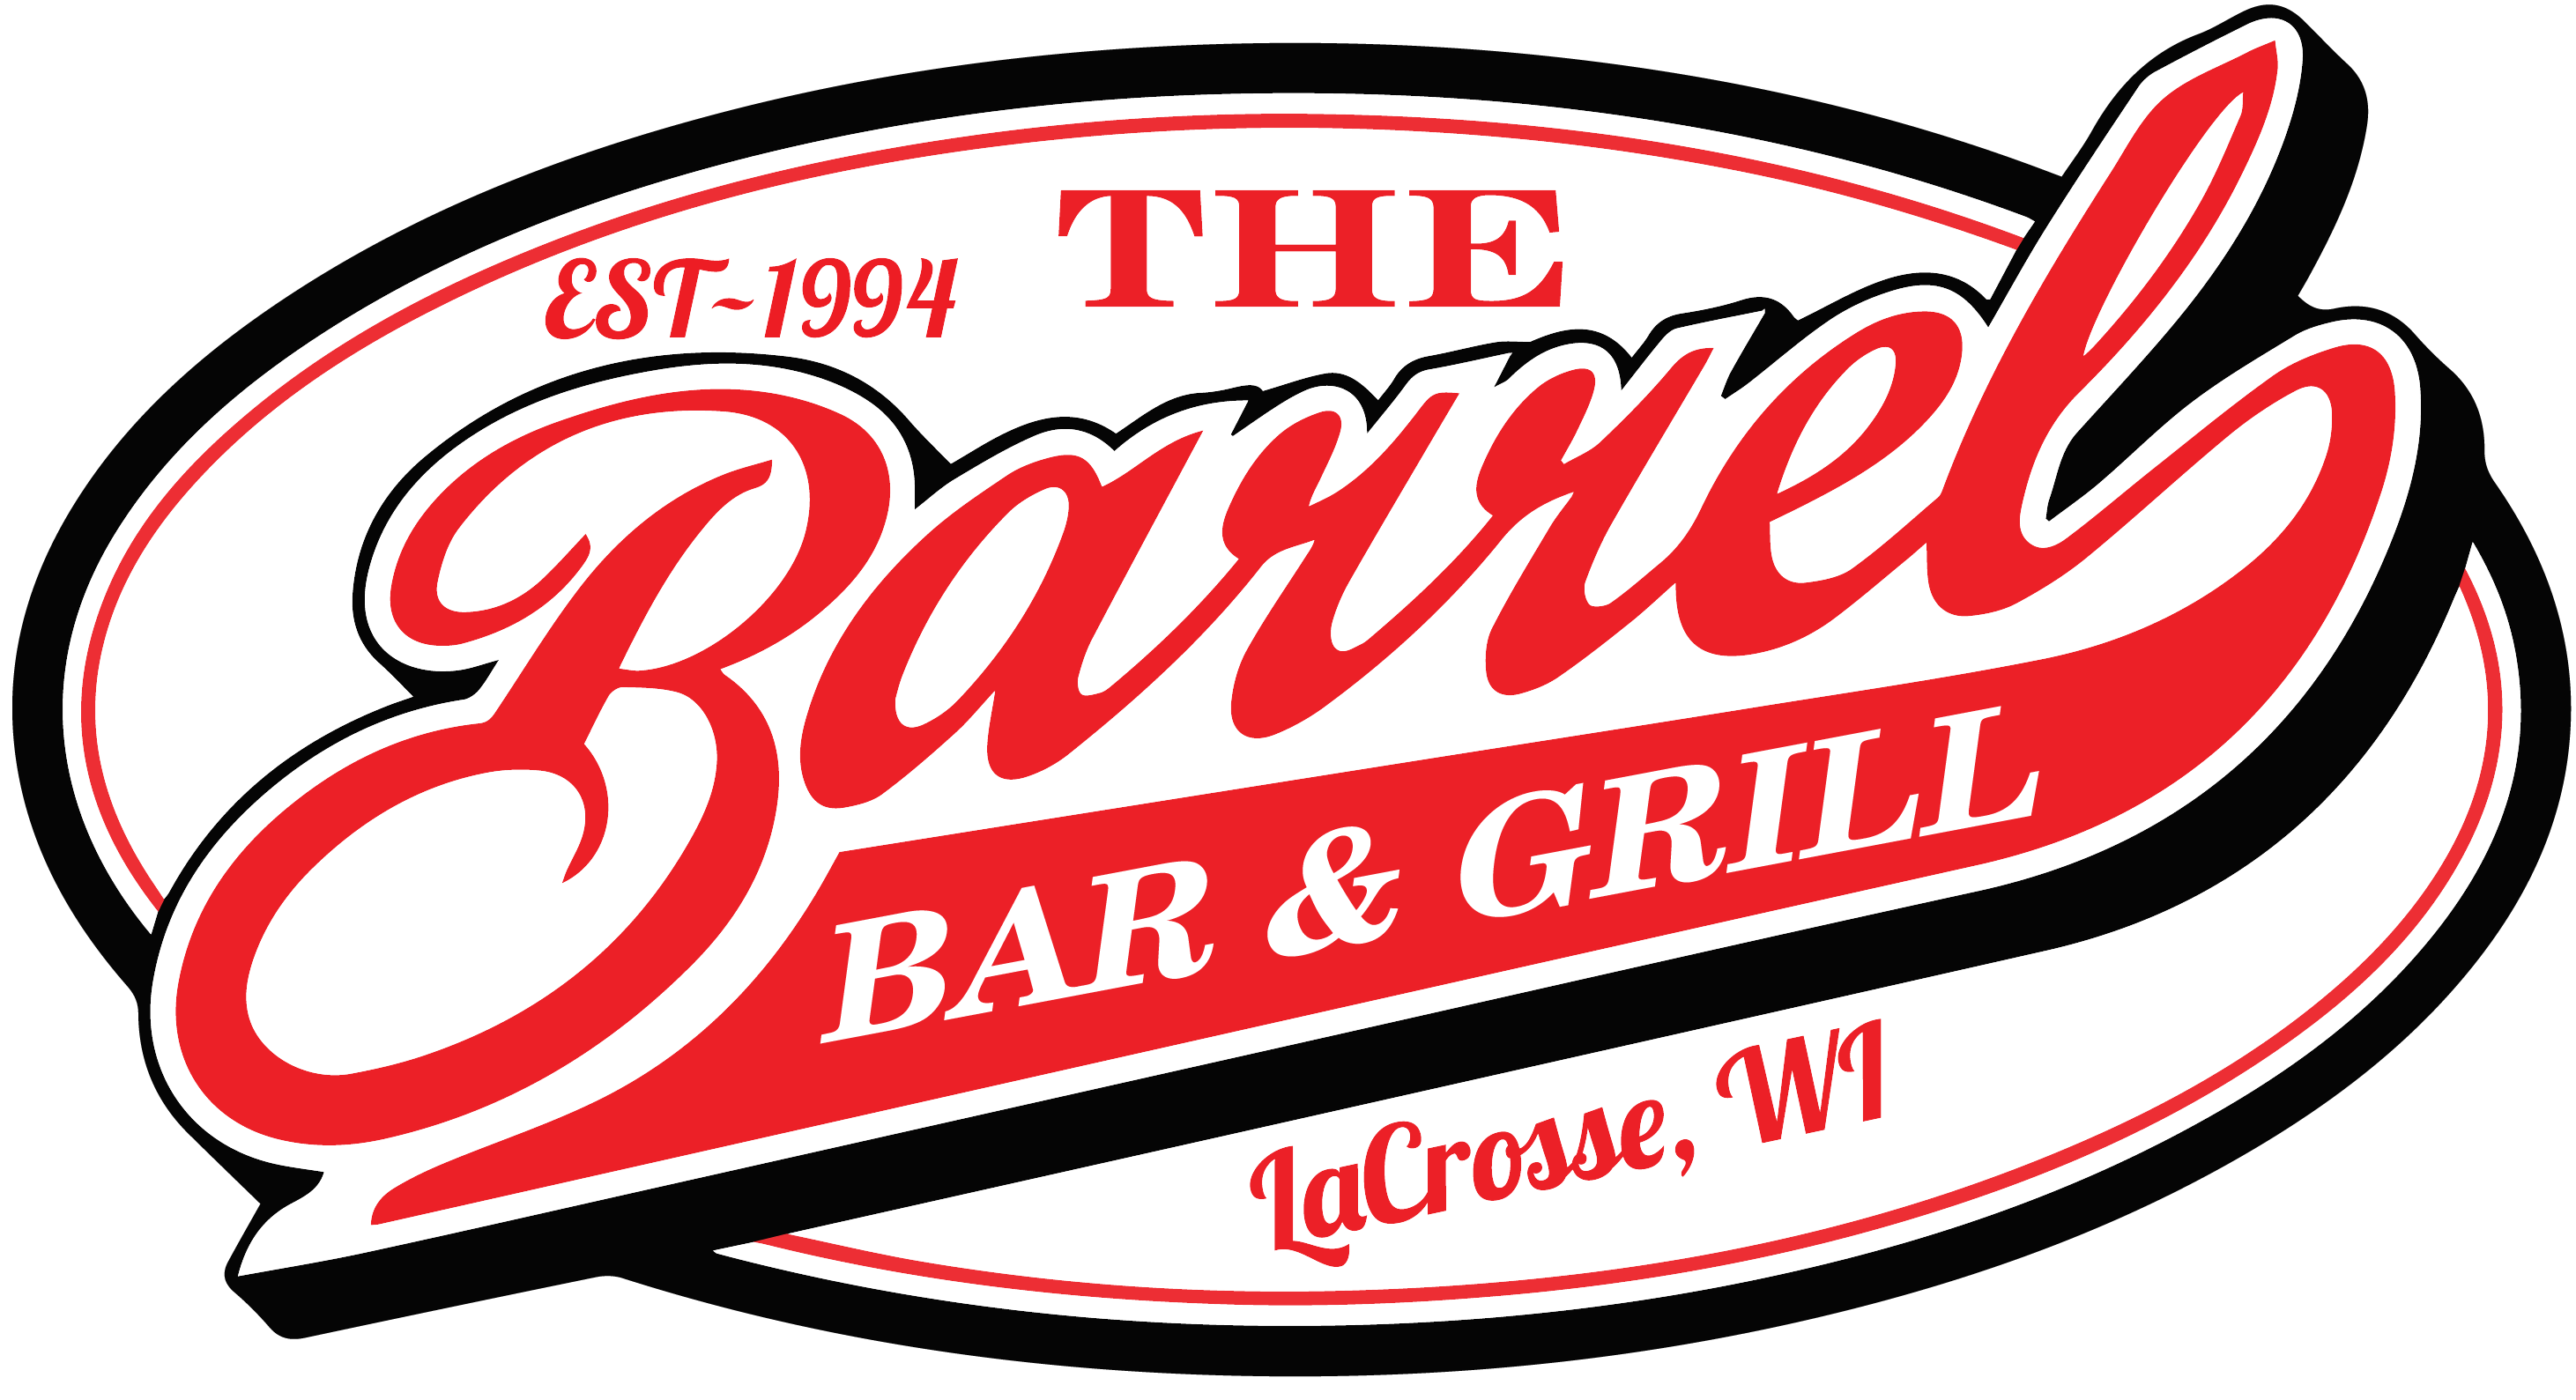 The Barrel Inn Bar & Grill – La Crosse, WI Logo